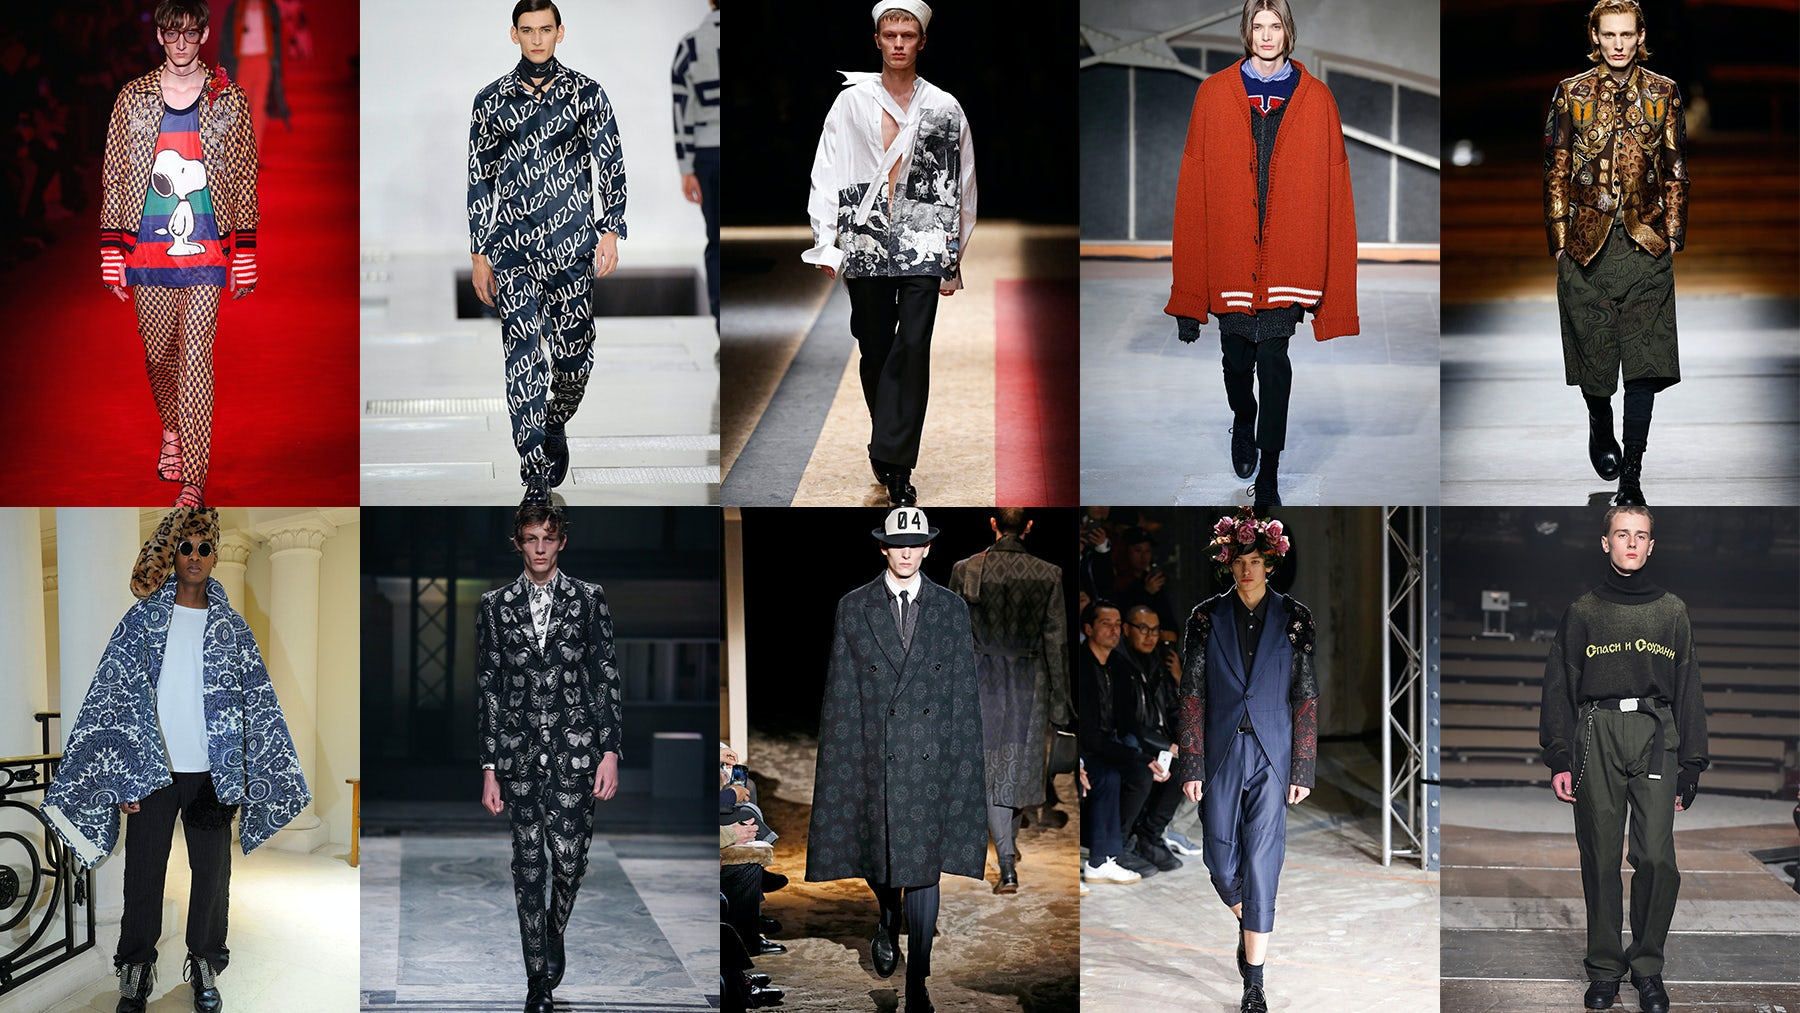 Top 10 Menswear Shows Autumn/Winter 2016